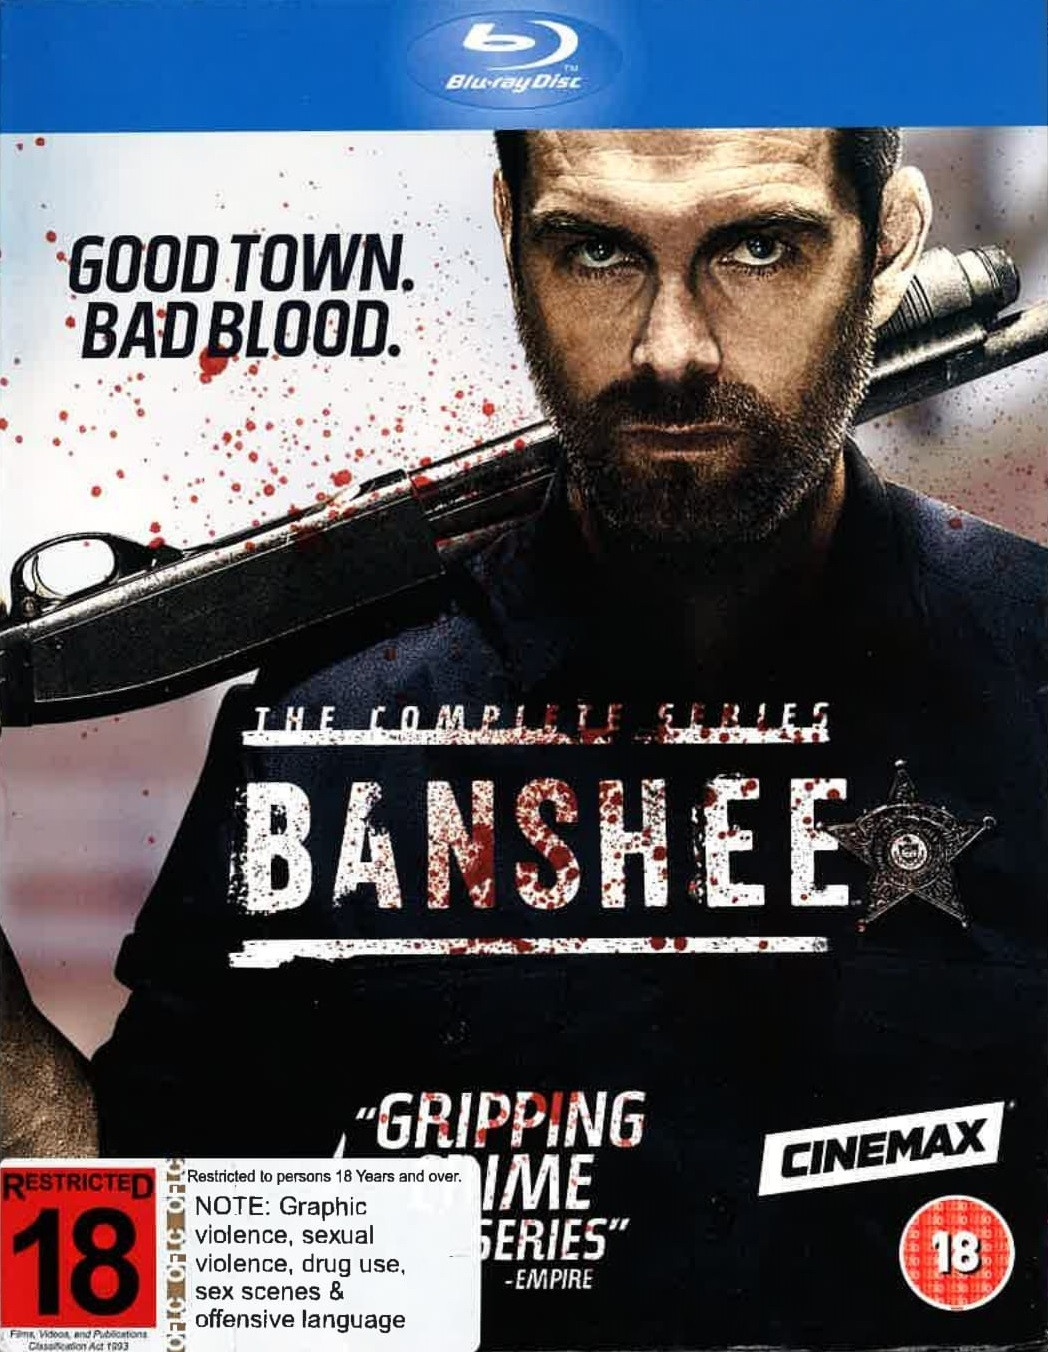 Banshee - The Complete Series on Blu-ray image